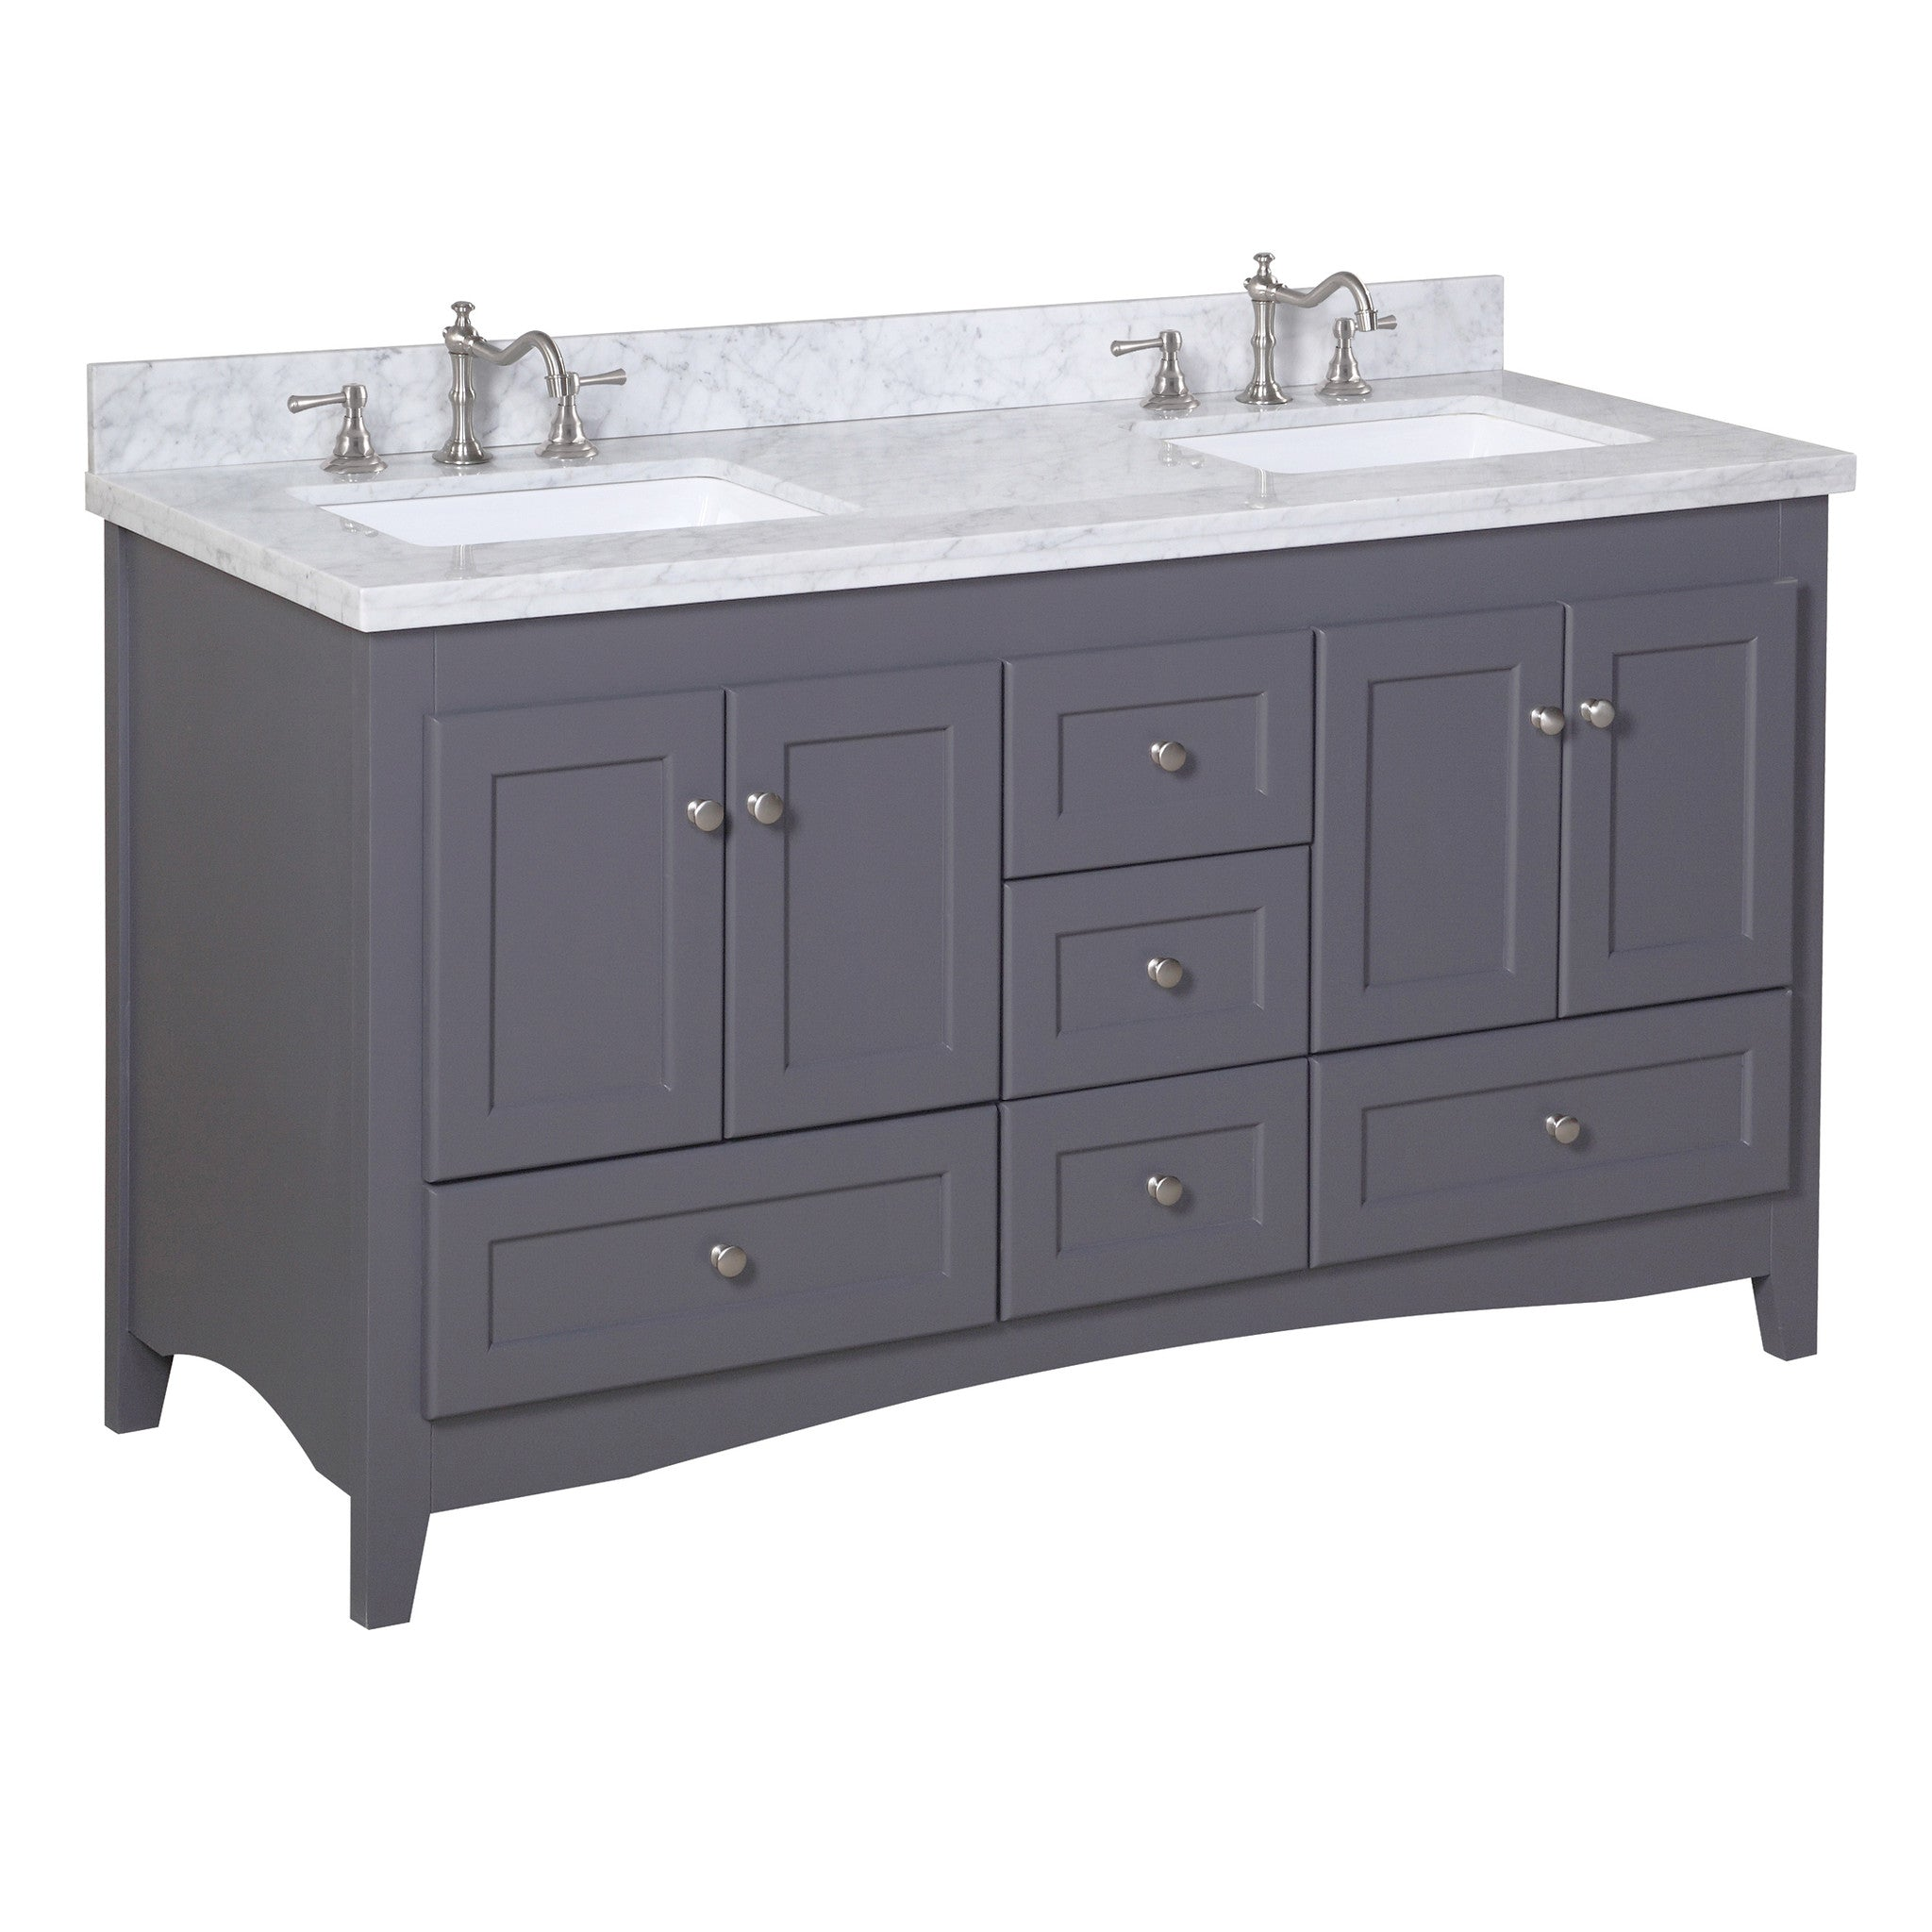 Astonishing Bathroom Vanities Tagged 60 Inch Double Vanities Download Free Architecture Designs Embacsunscenecom